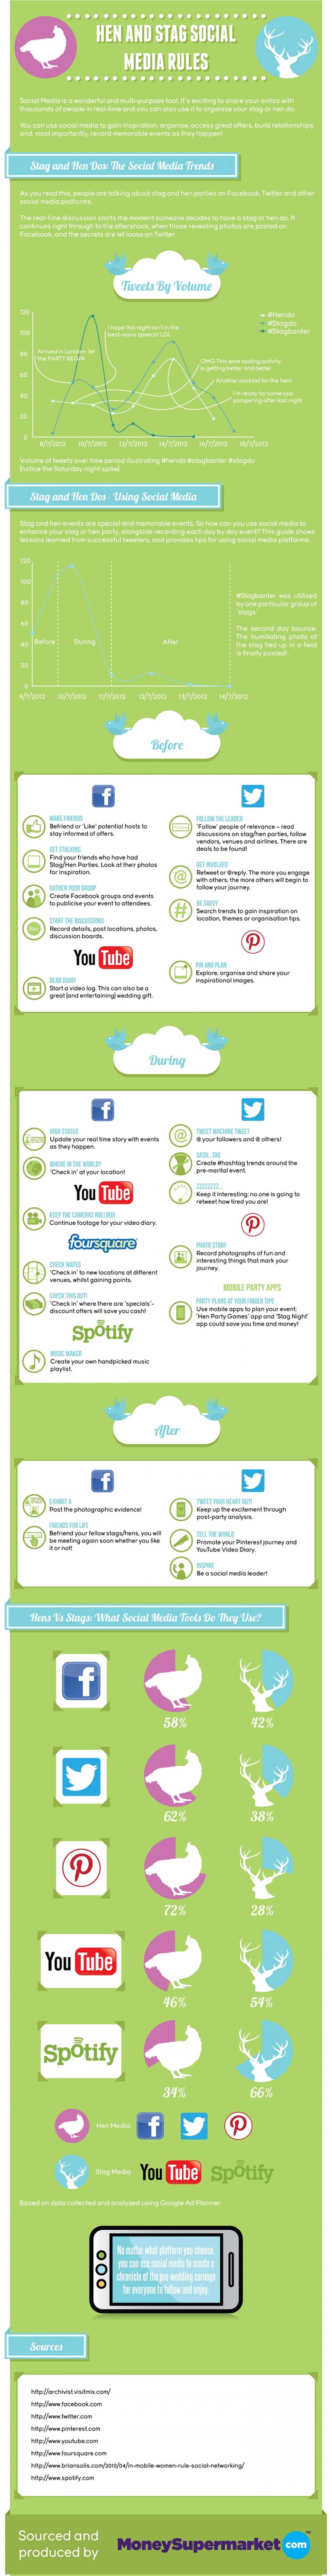 Hen and Stag Social Media Rules Infographic